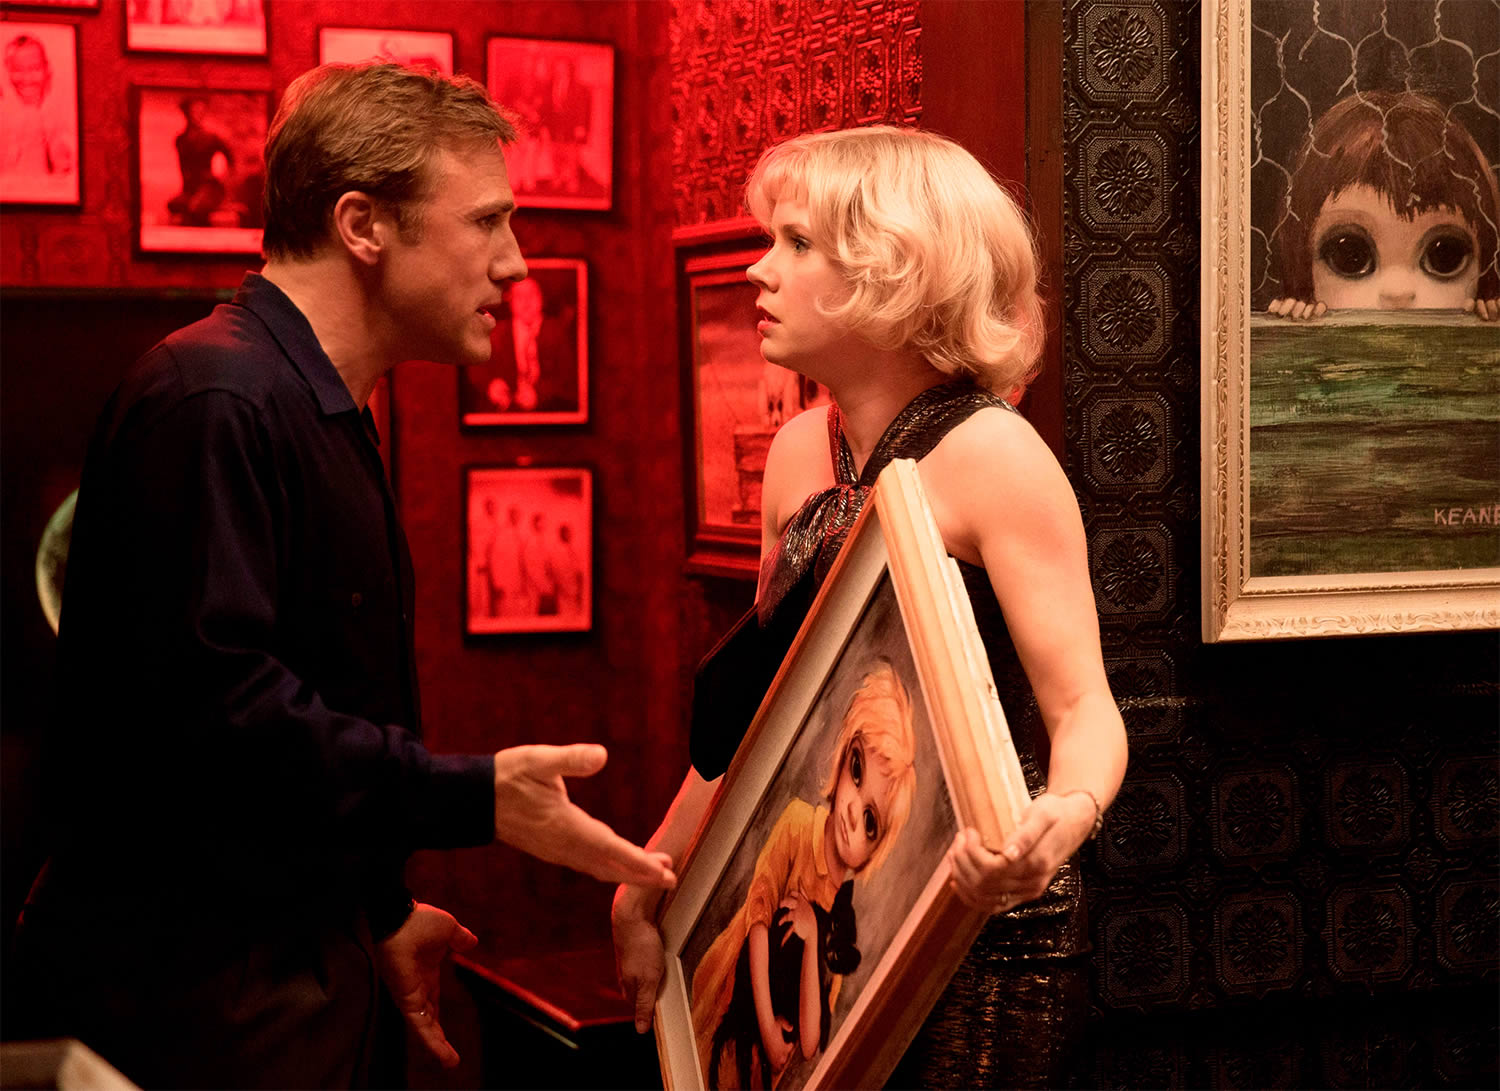 fighting over a painting in tim burton's big eyes